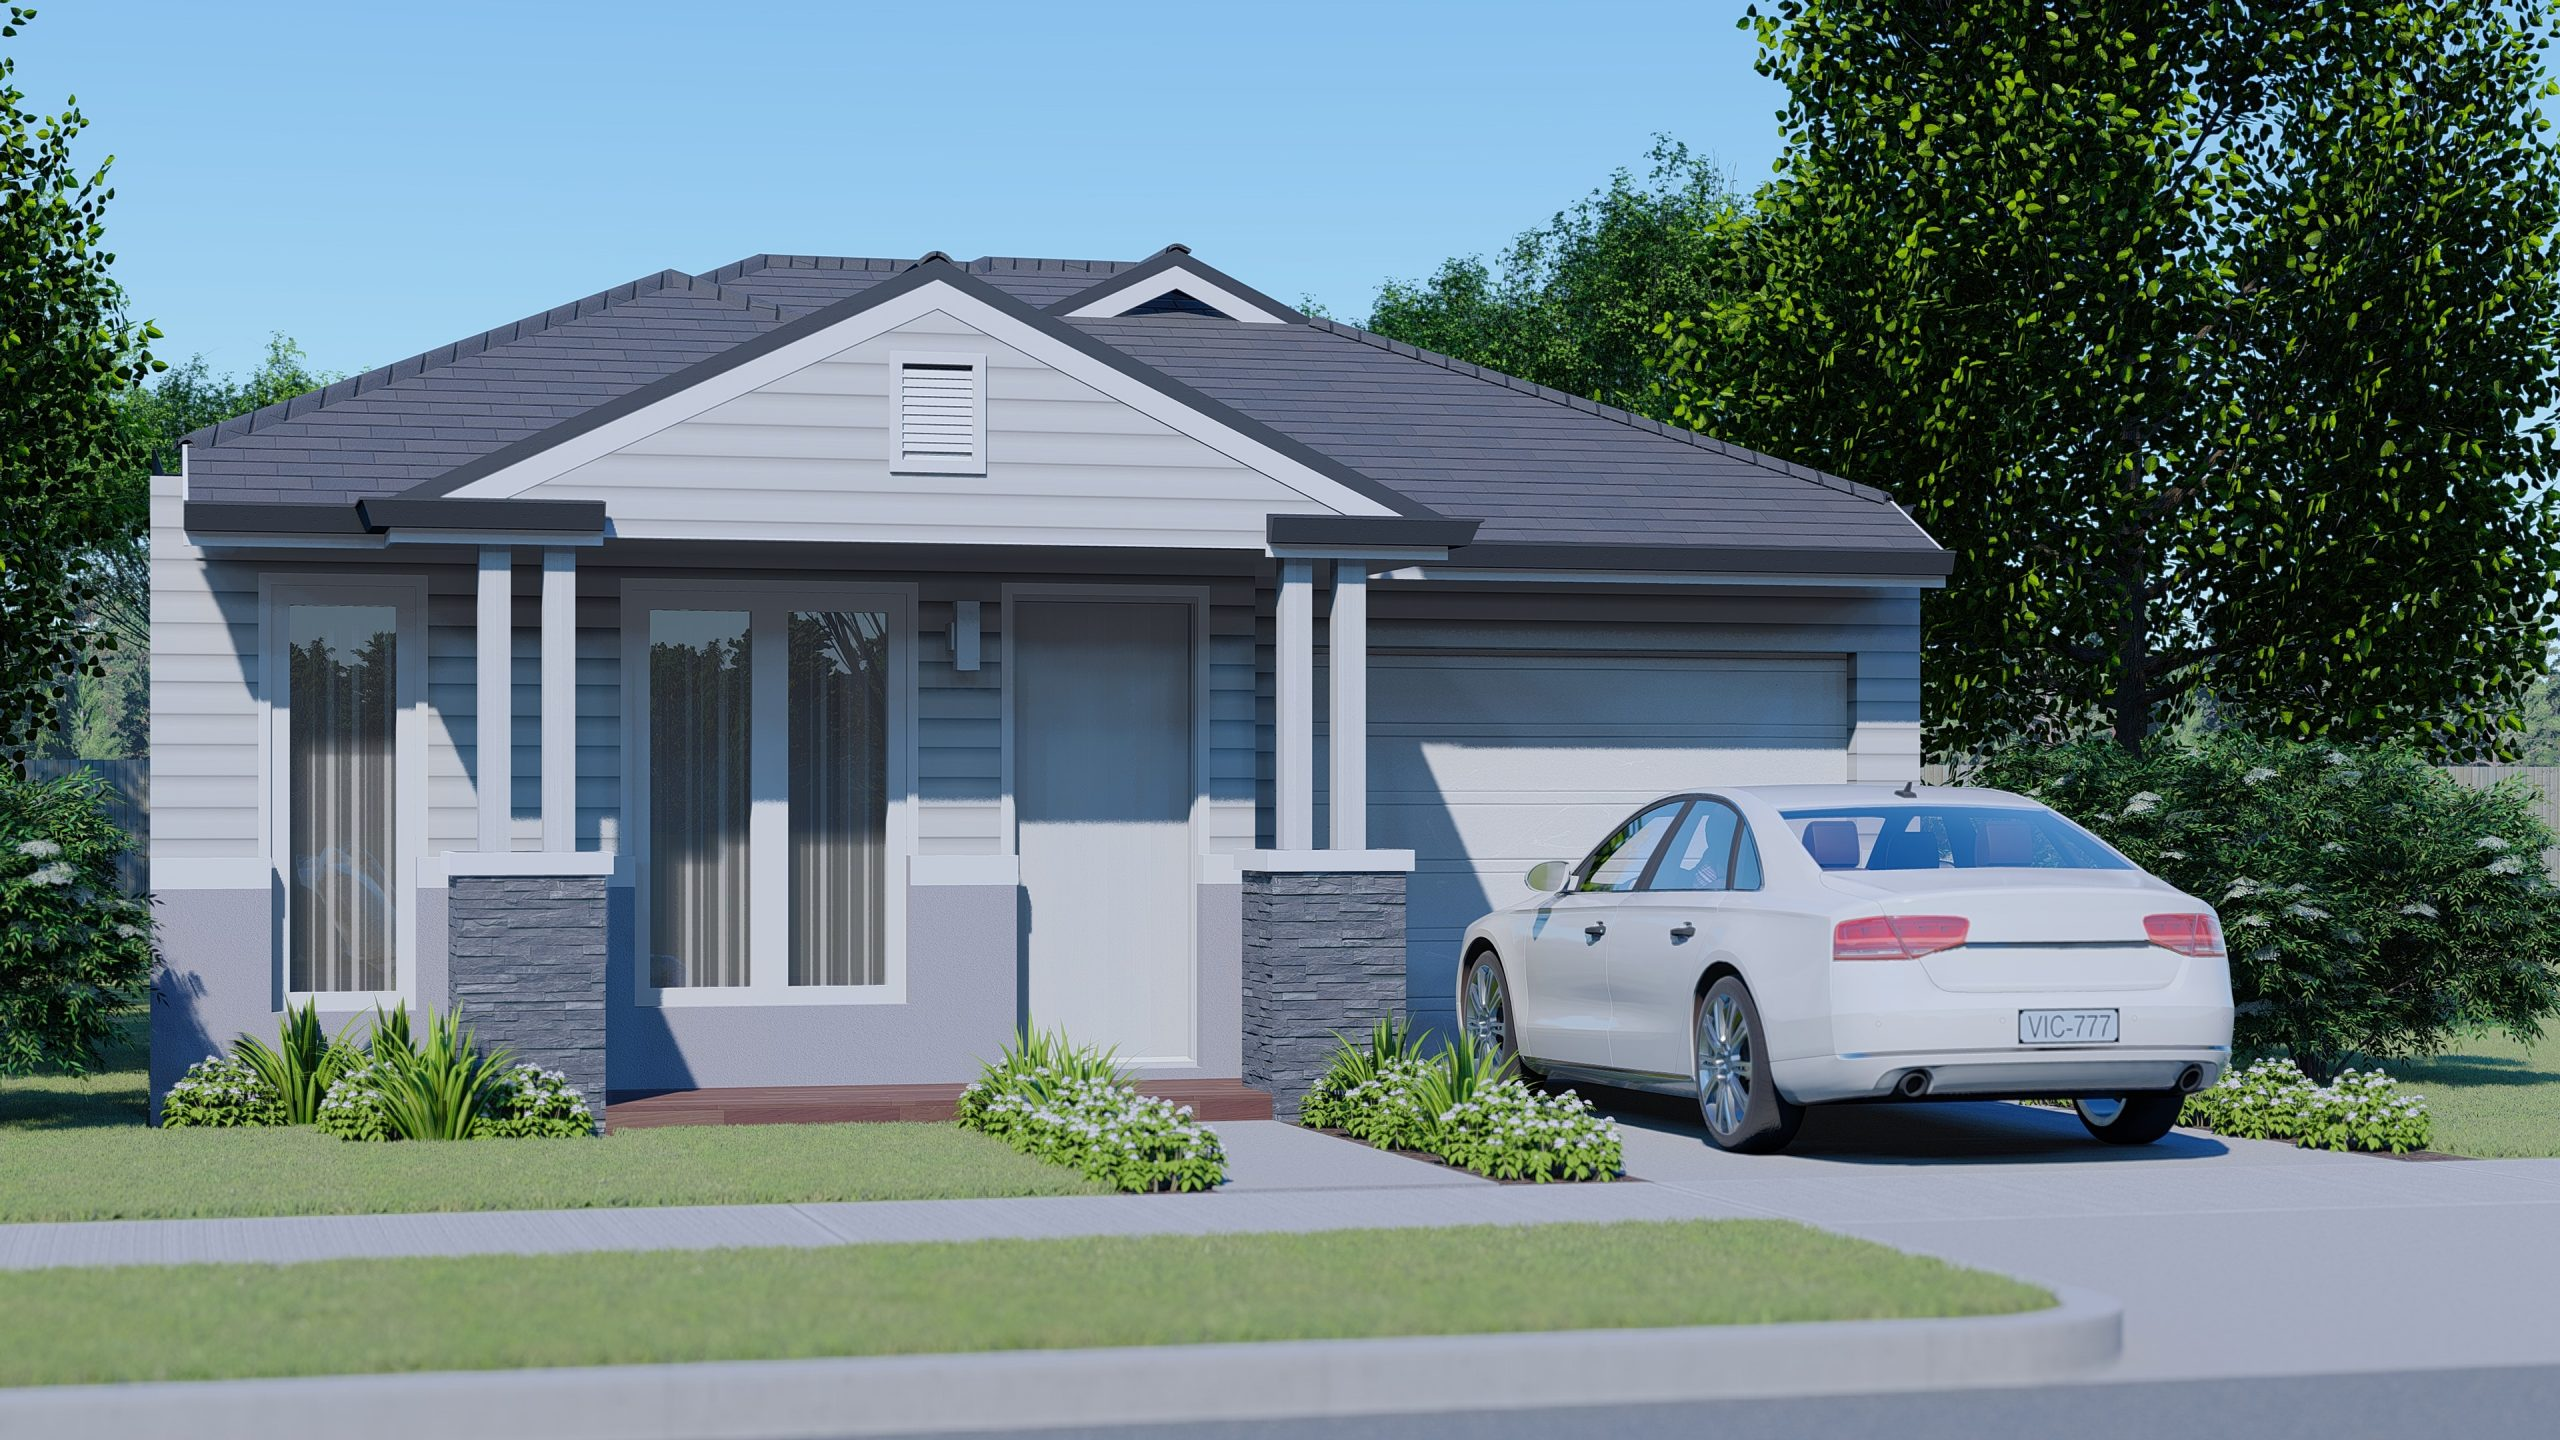 Style 2: 8.5M Width Block with 3 Bedroom Cottage Home